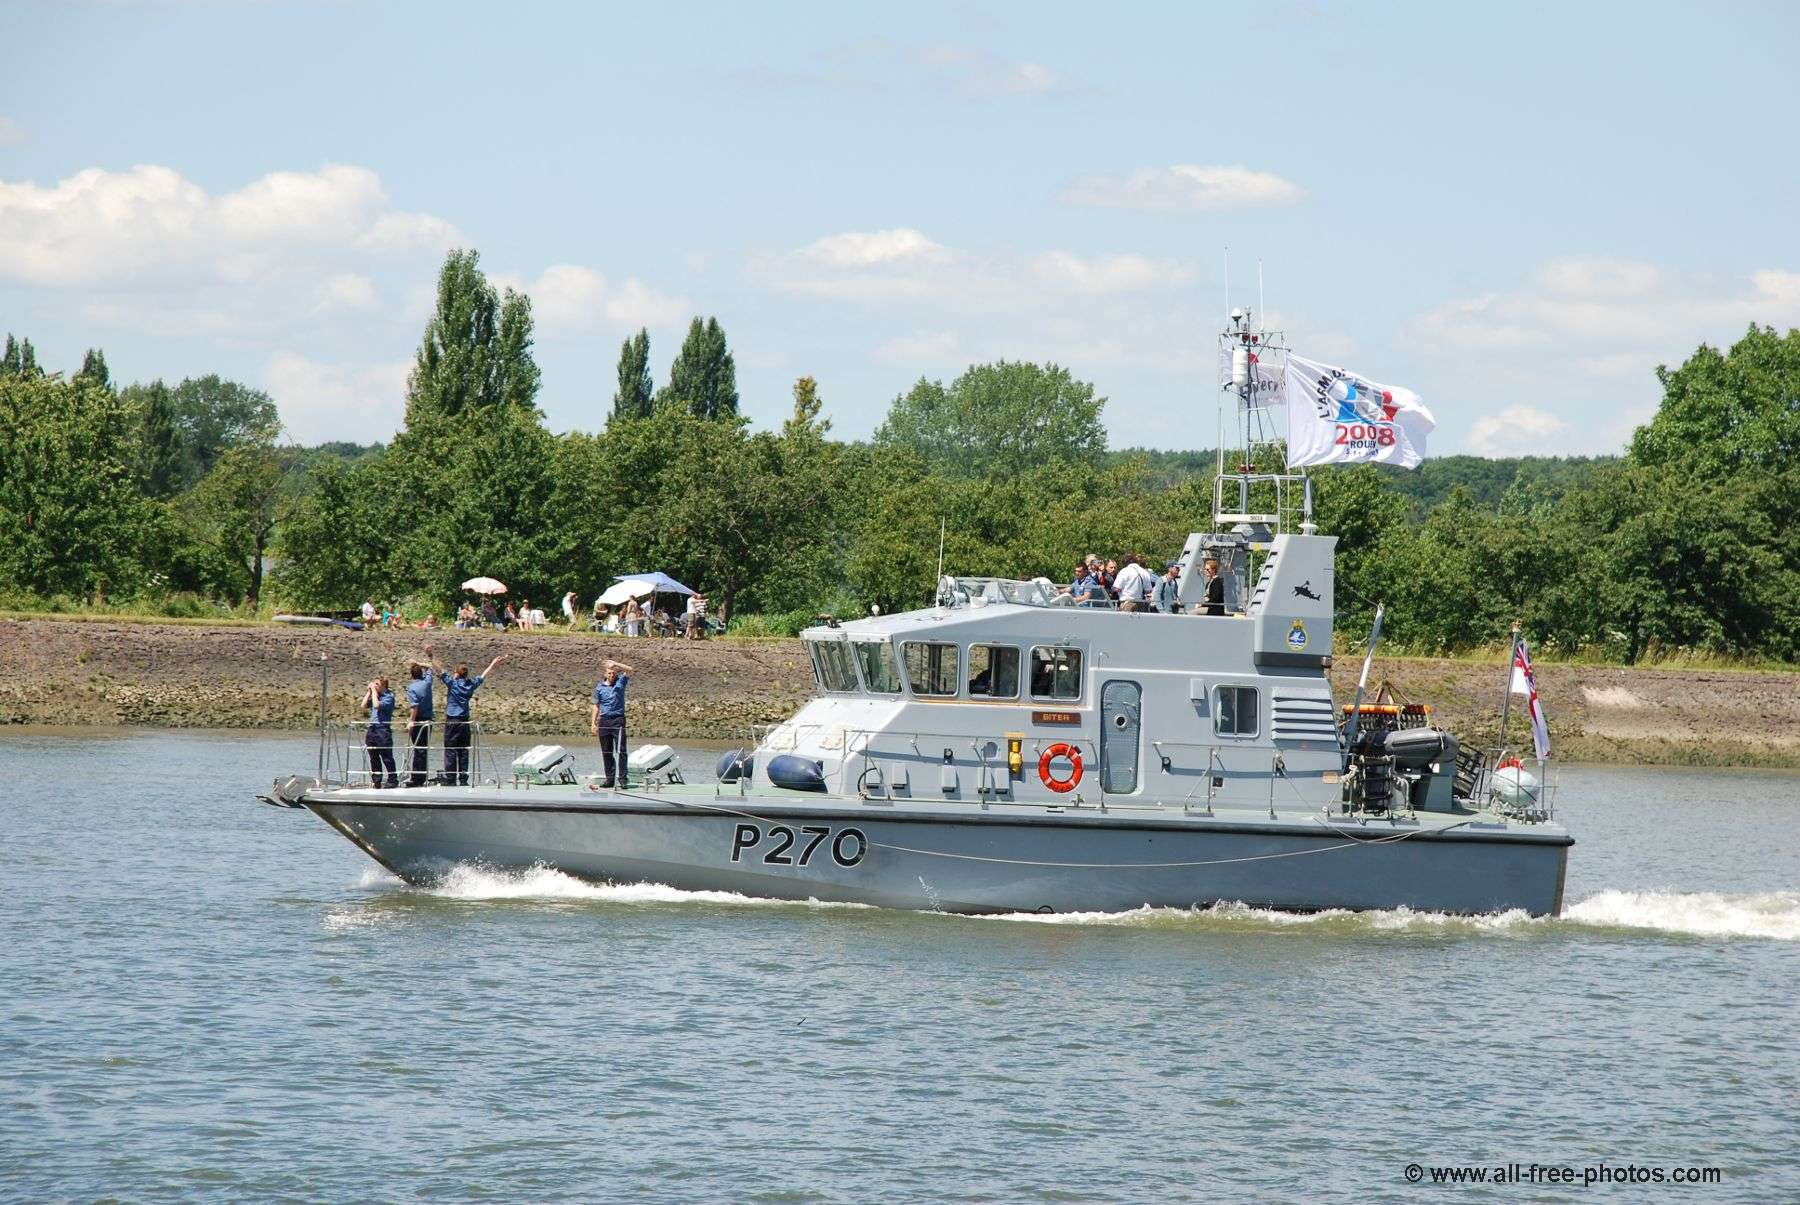 Patrol vessel HMS Biter - Great Britain